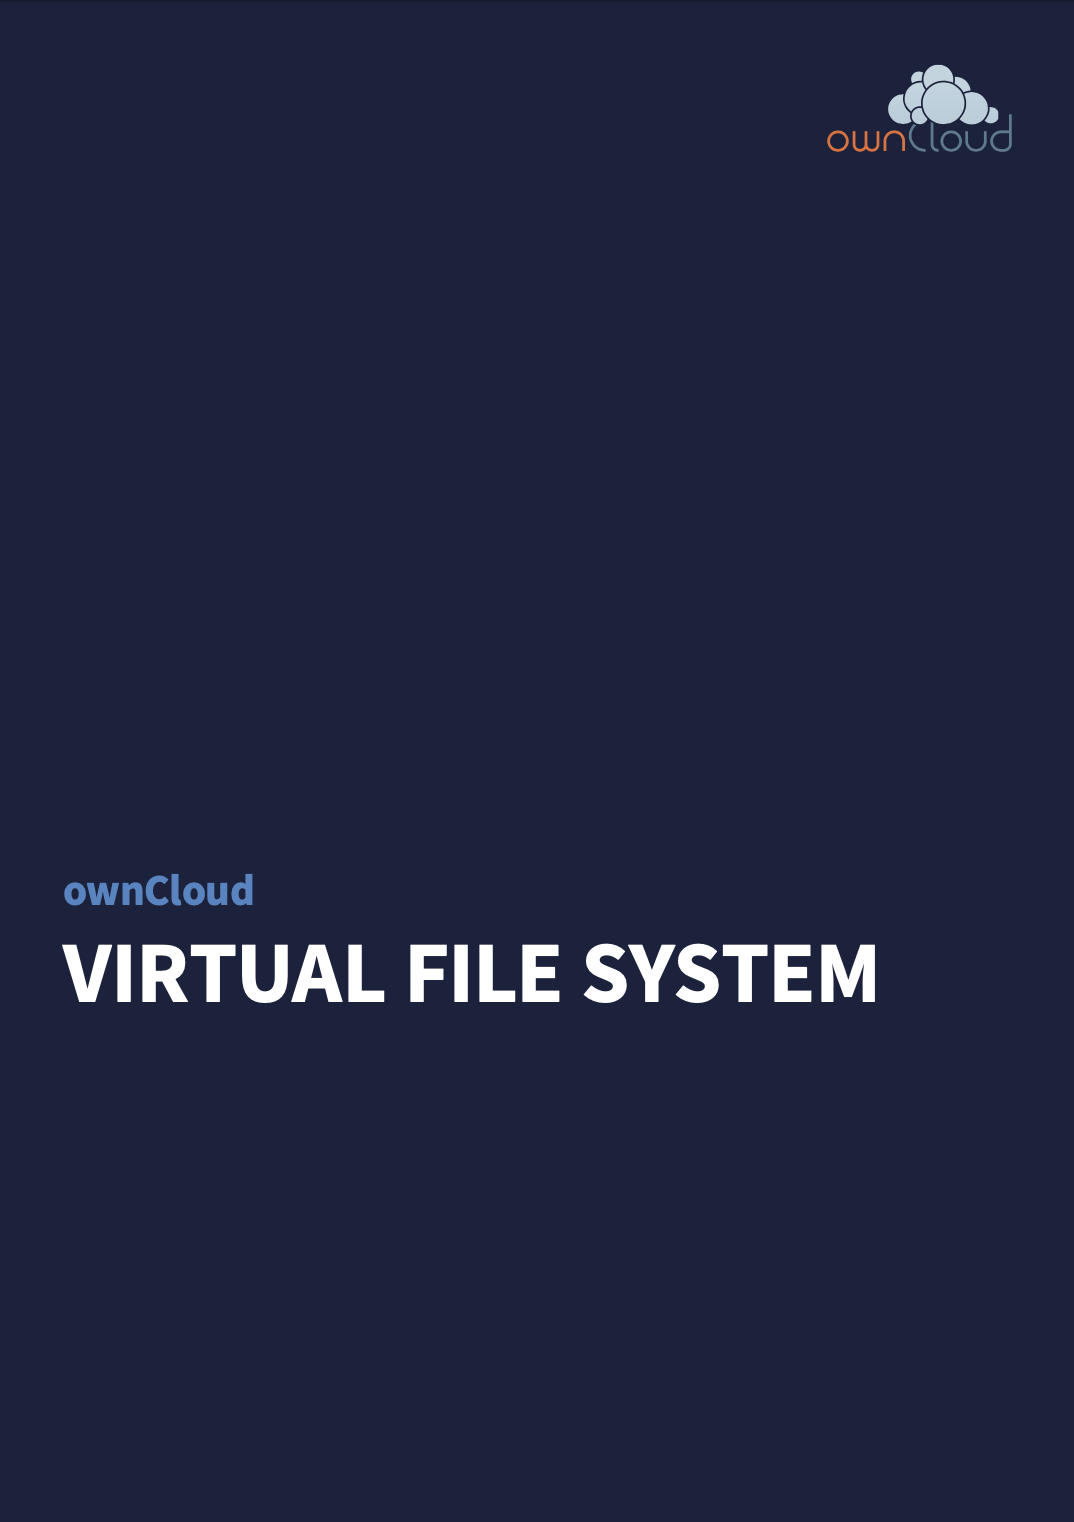 ownCloud Virtual File System